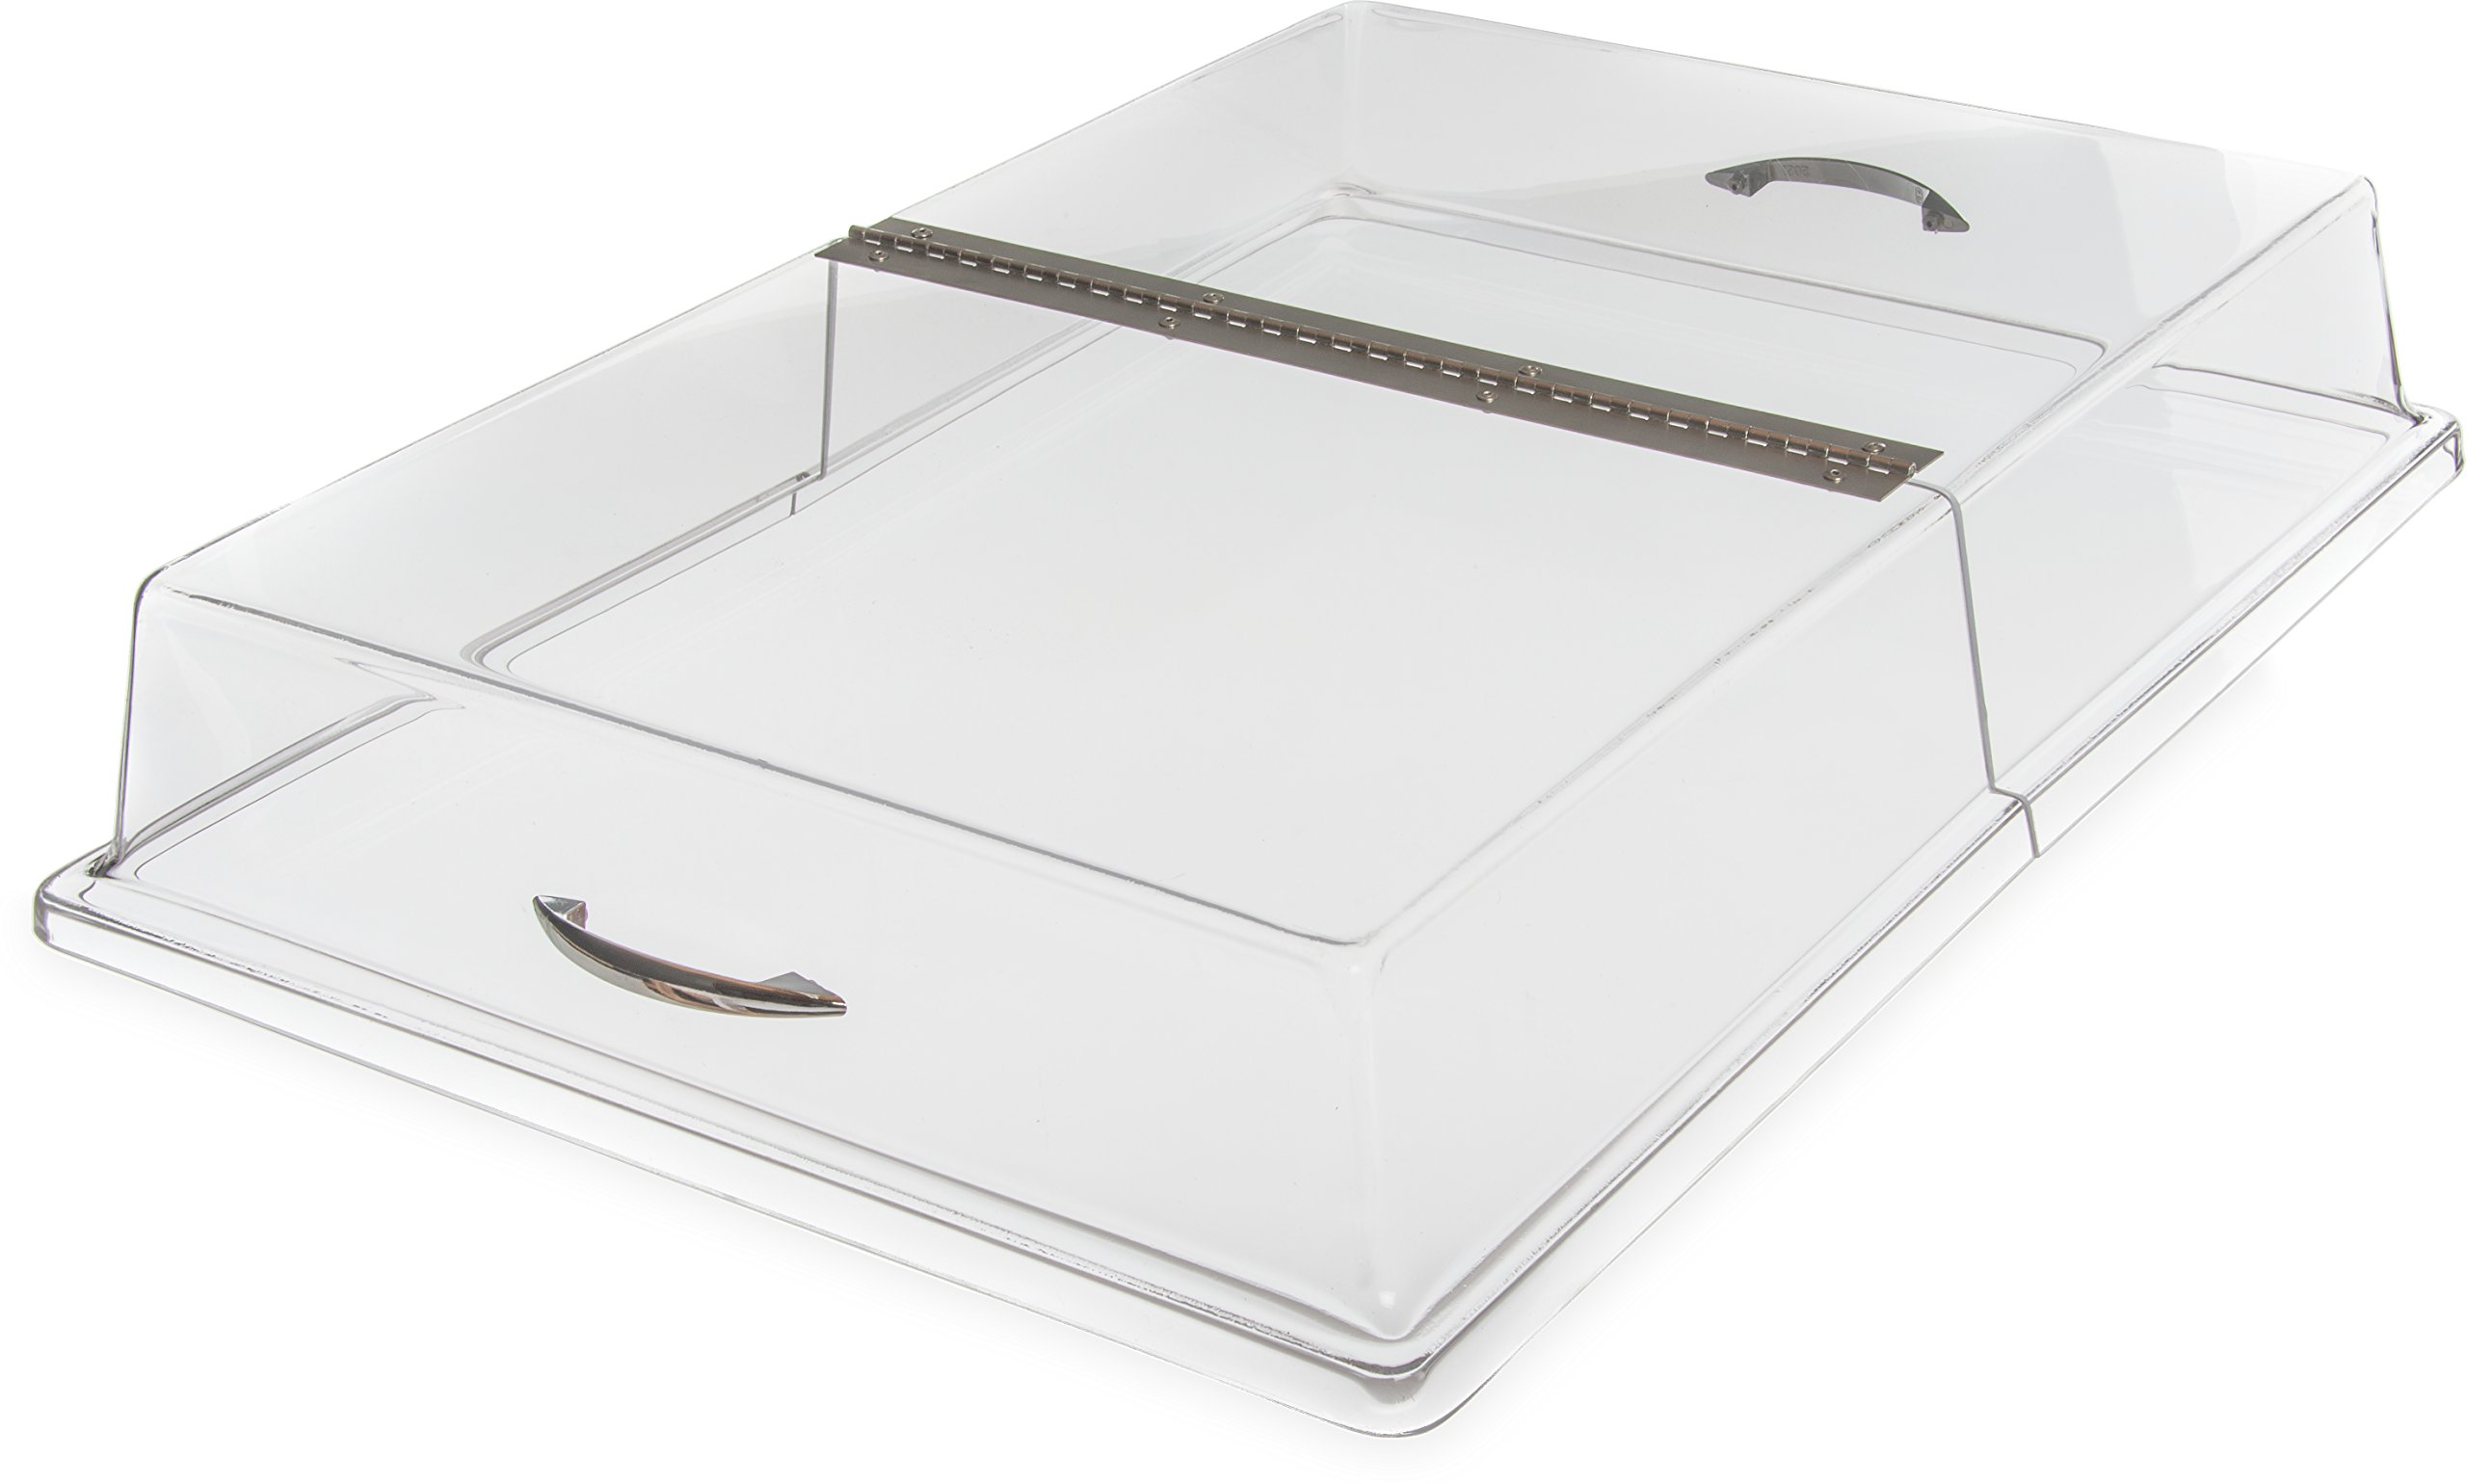 Carlisle SC2607 Acrylic Pastry Tray Hinged Cover, 26.19 x 18.20 x 4'', Clear